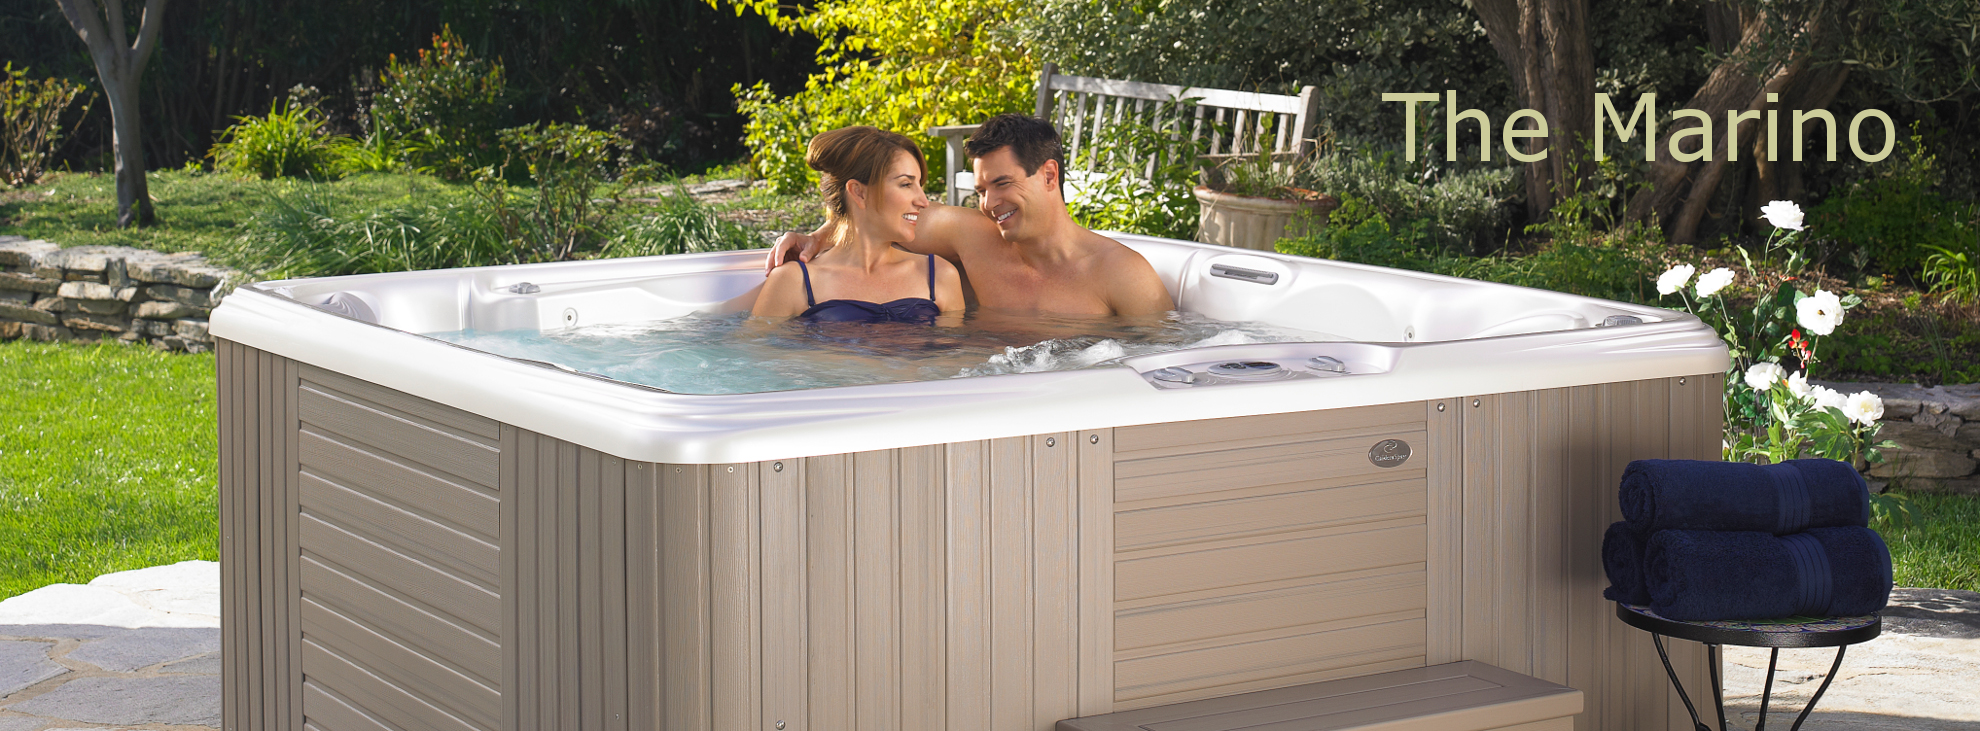 Marino 5 person lounge hot tub